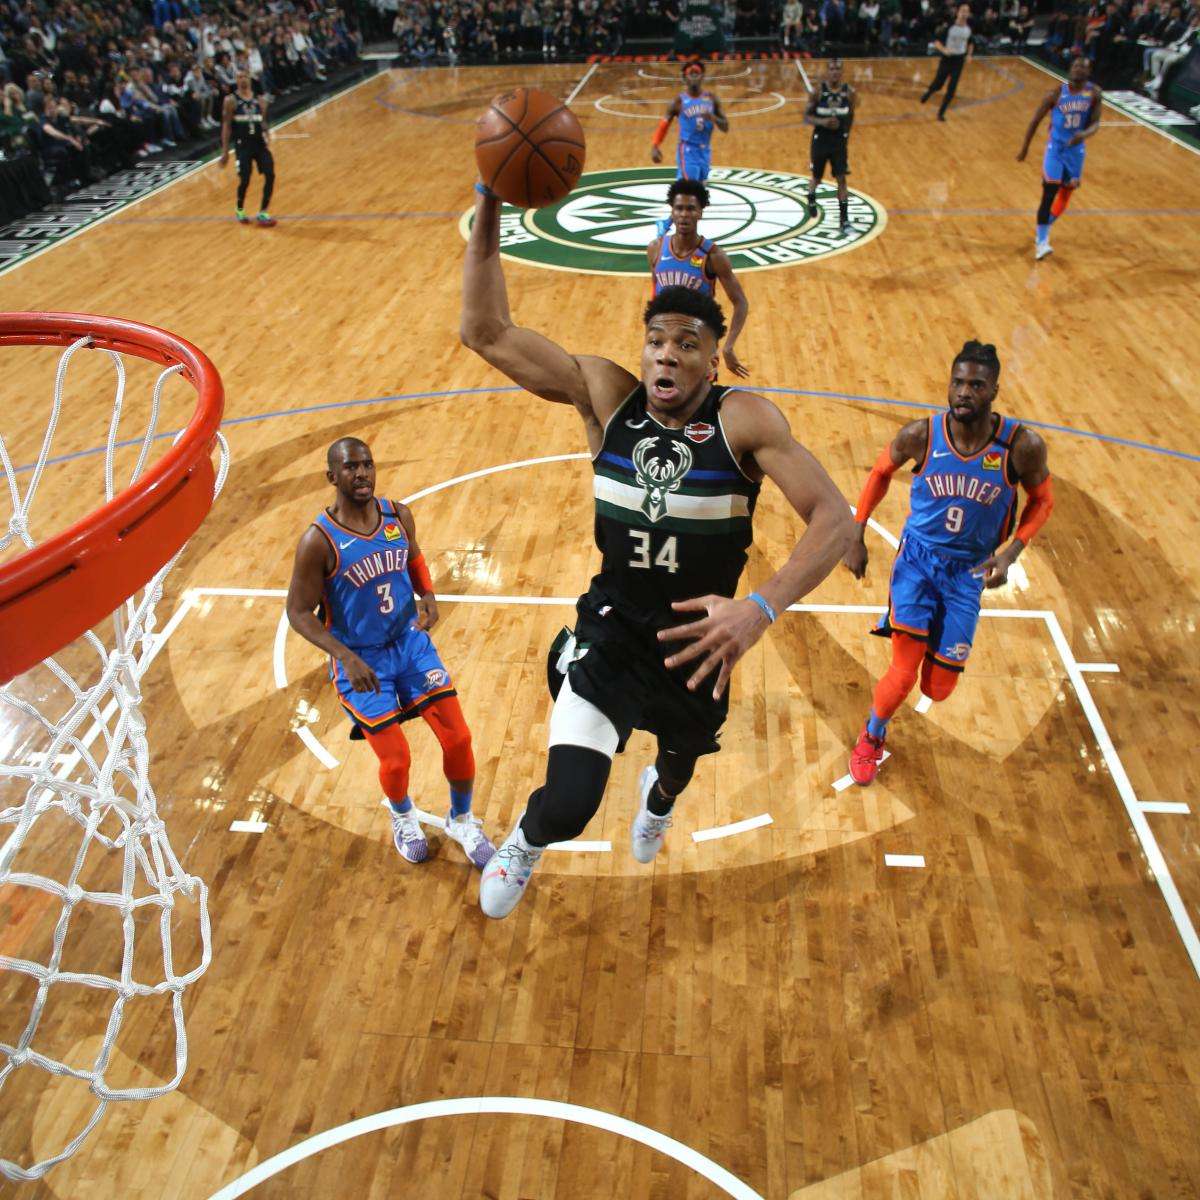 Giannis Dominates with 32 as Bucks Blow out Chris Paul, Thunder by 47 Points